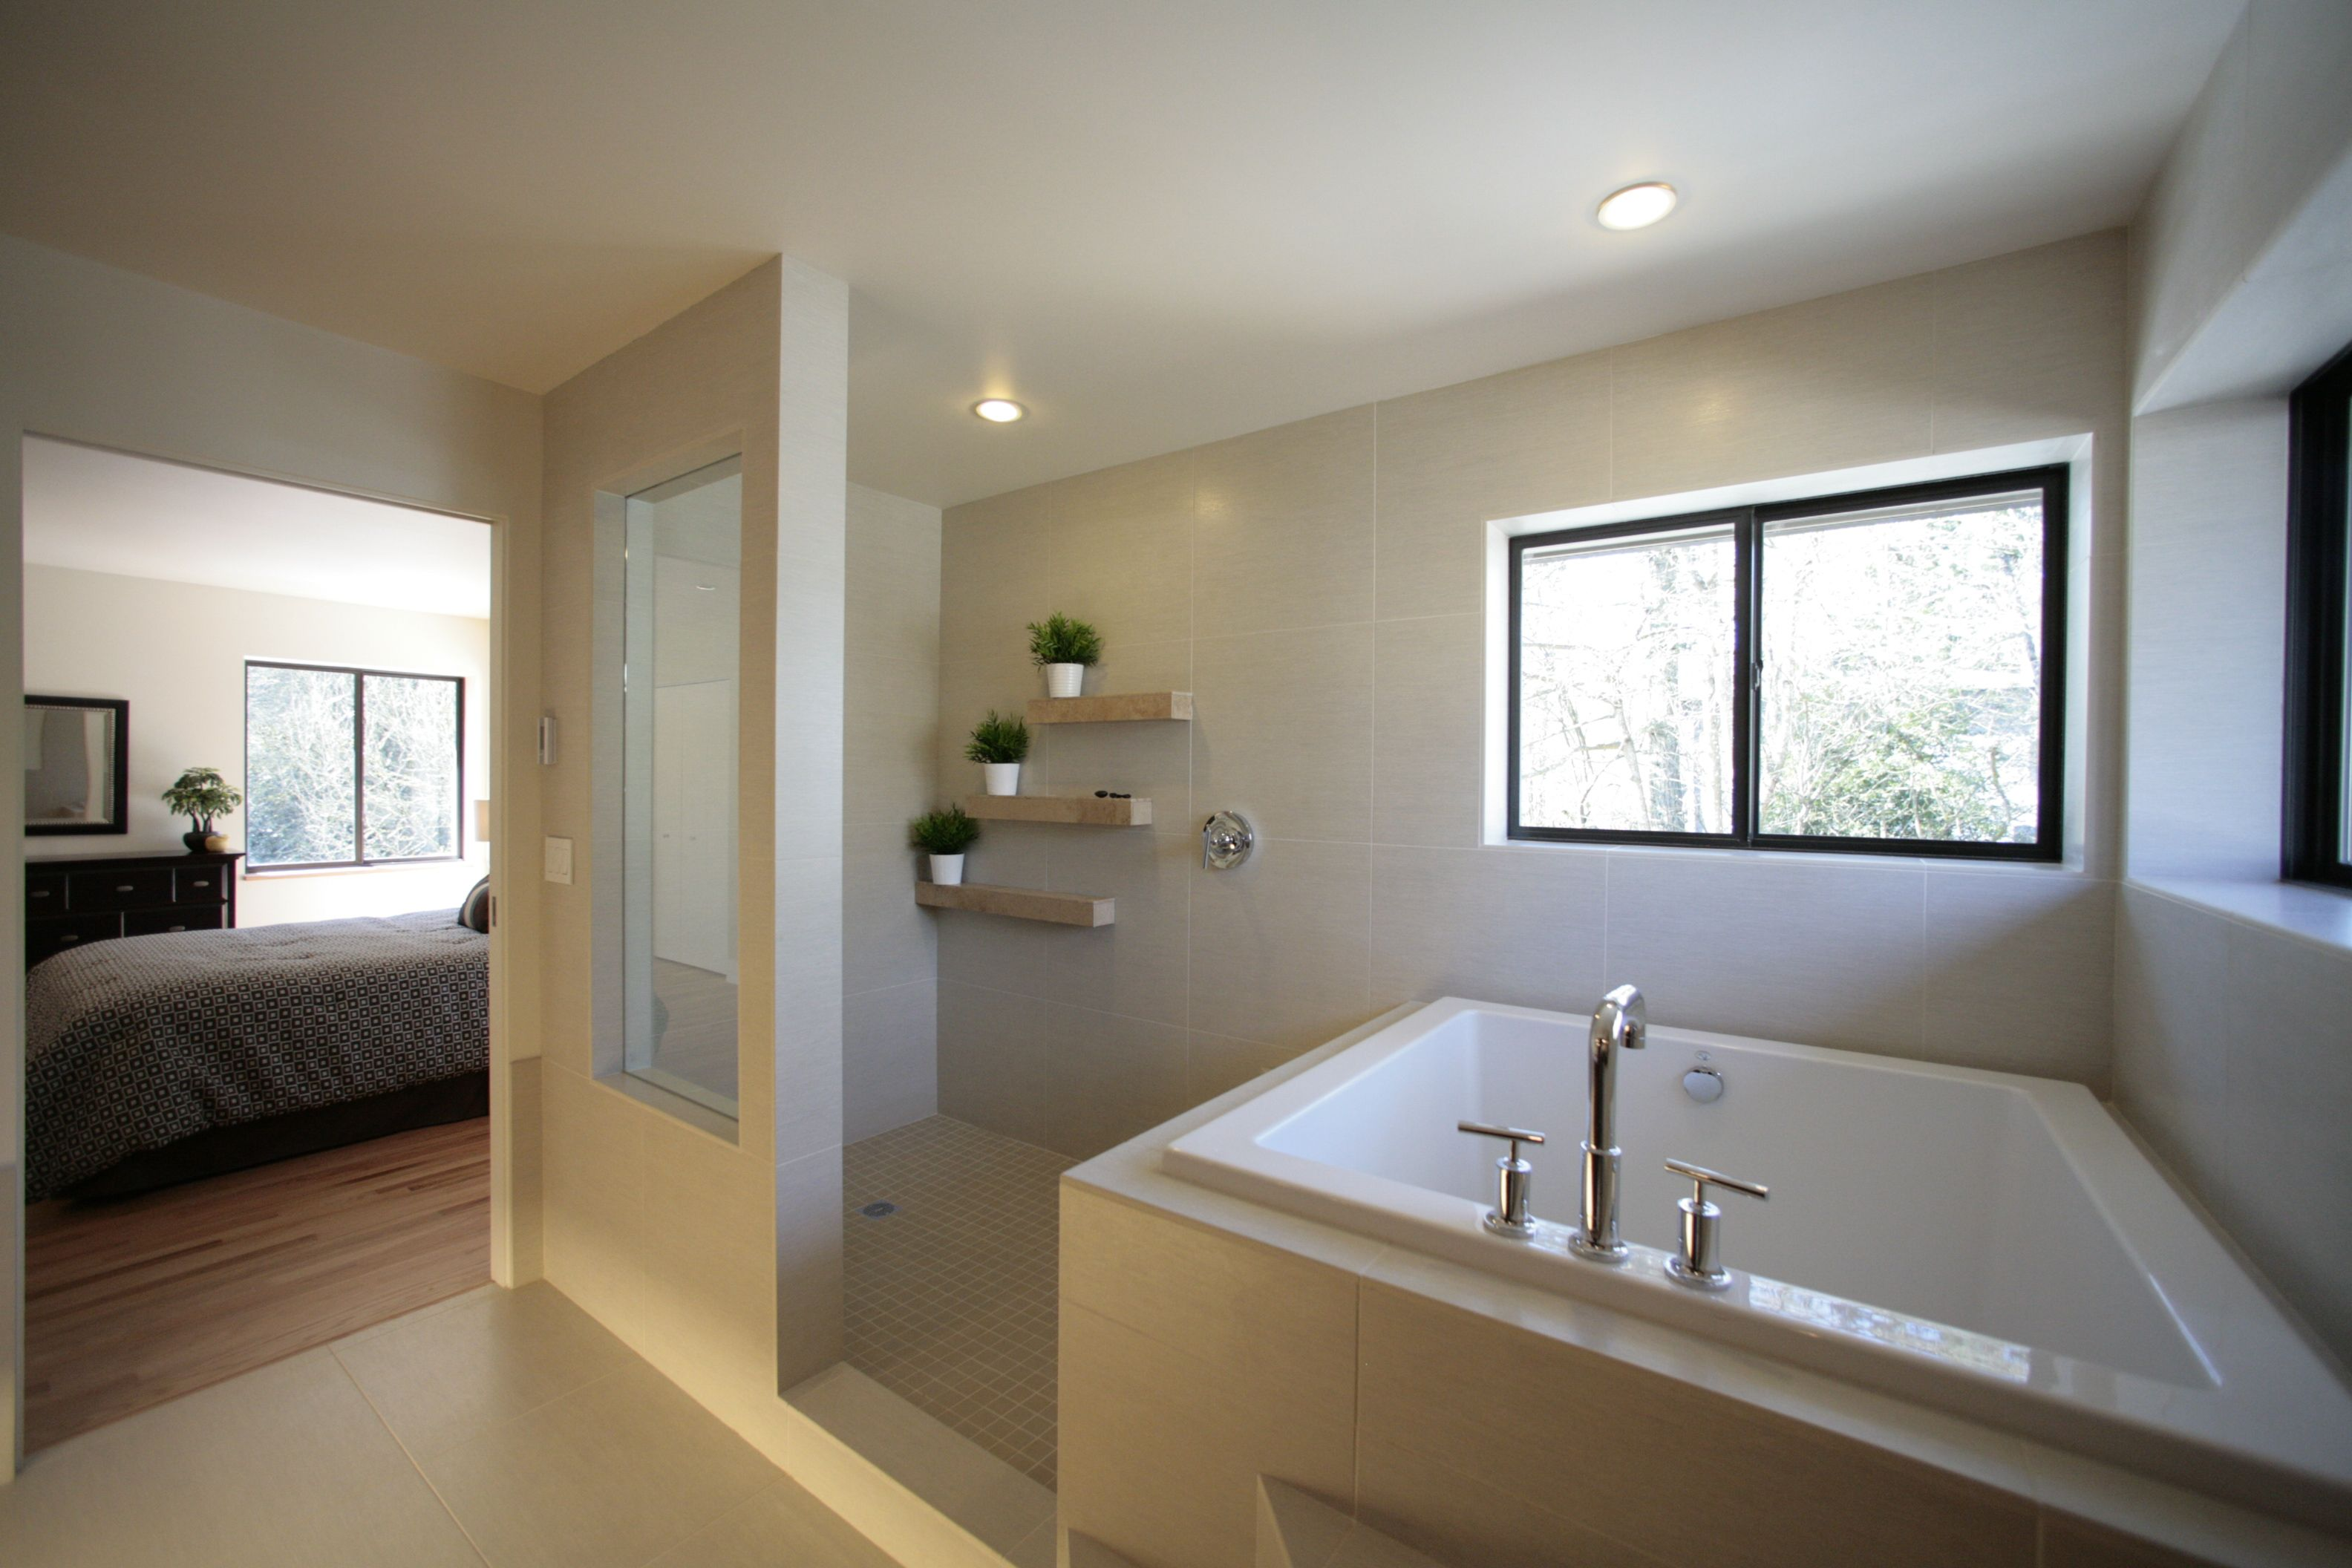 Image Result For 10x12 Master Bath Closet No Tub With Images